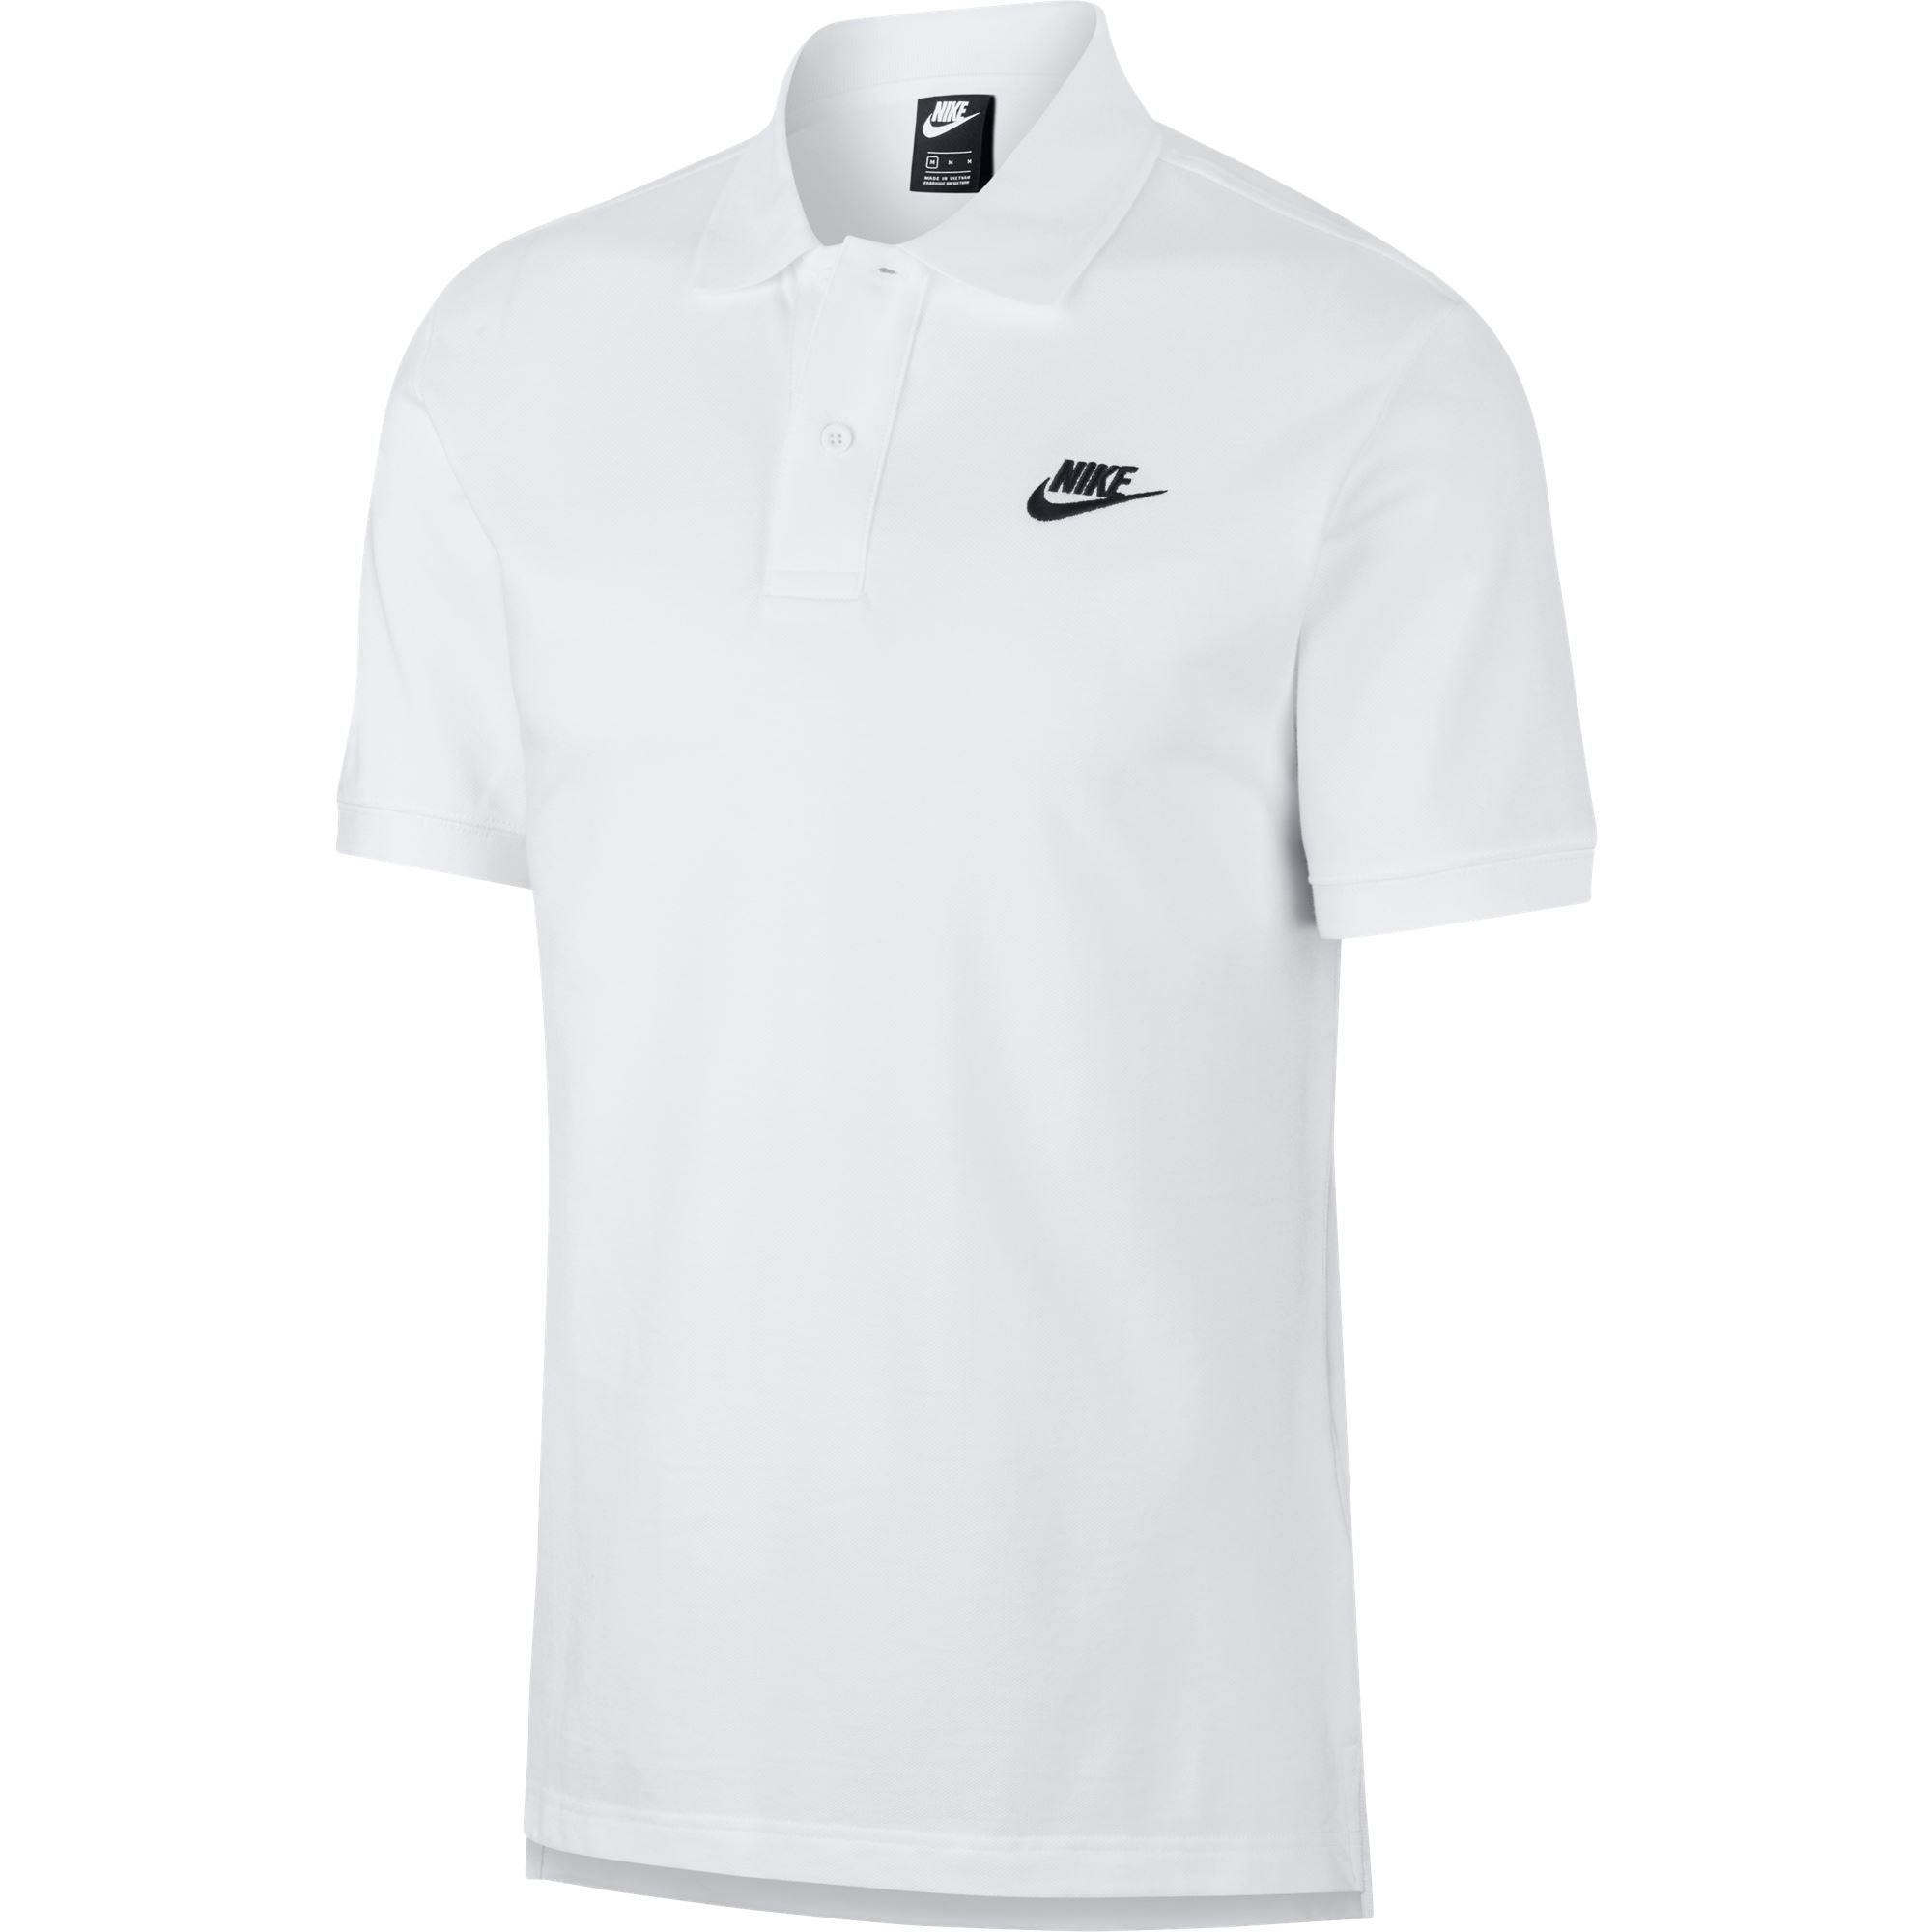 Nike Men's Sportswear Polo Shirt Match-Up - White/Black SP-ApparelShirts-Mens Nike